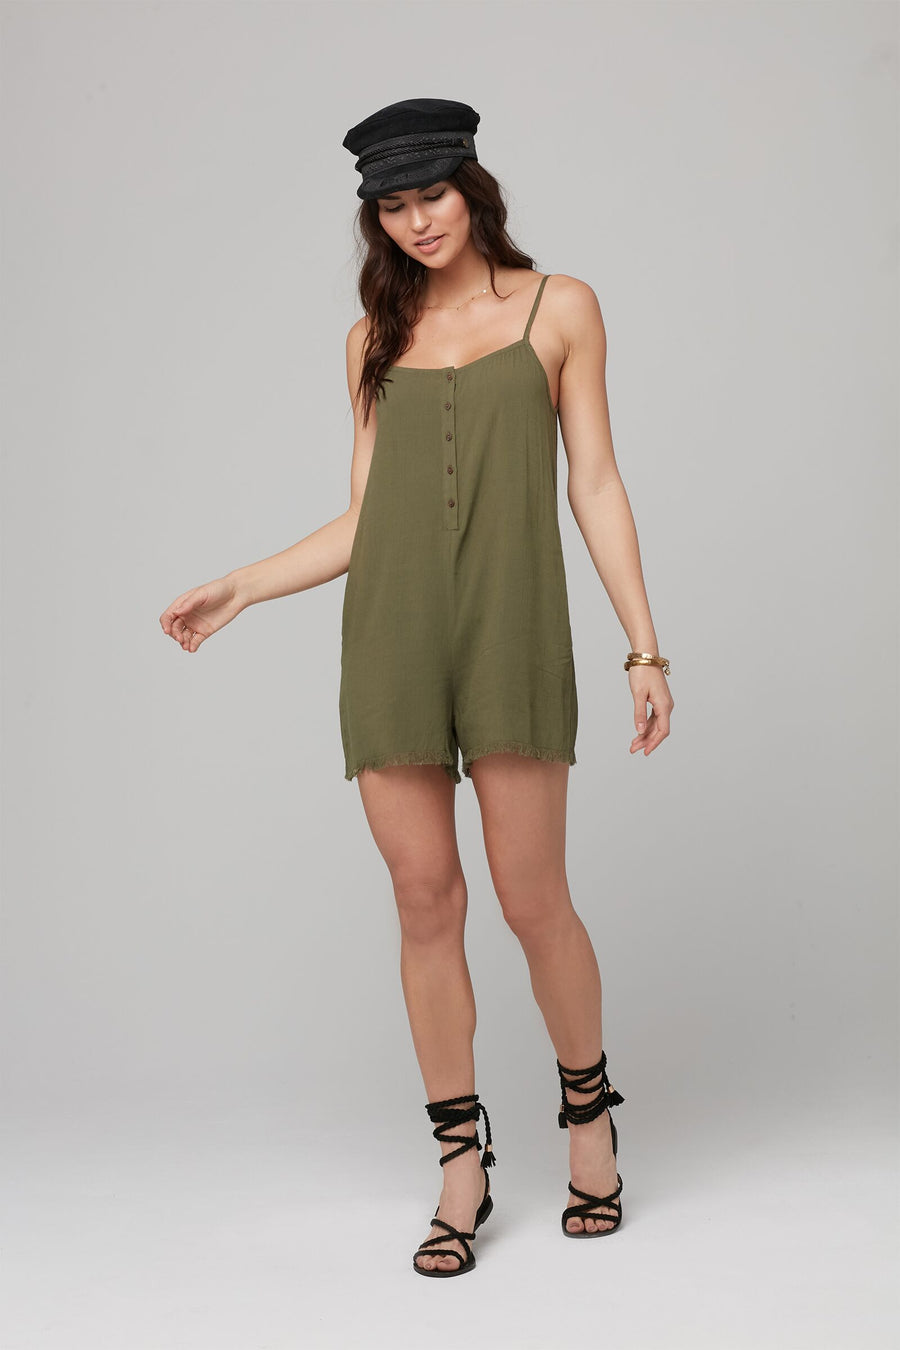 CORA ROMPER - Knot Sisters